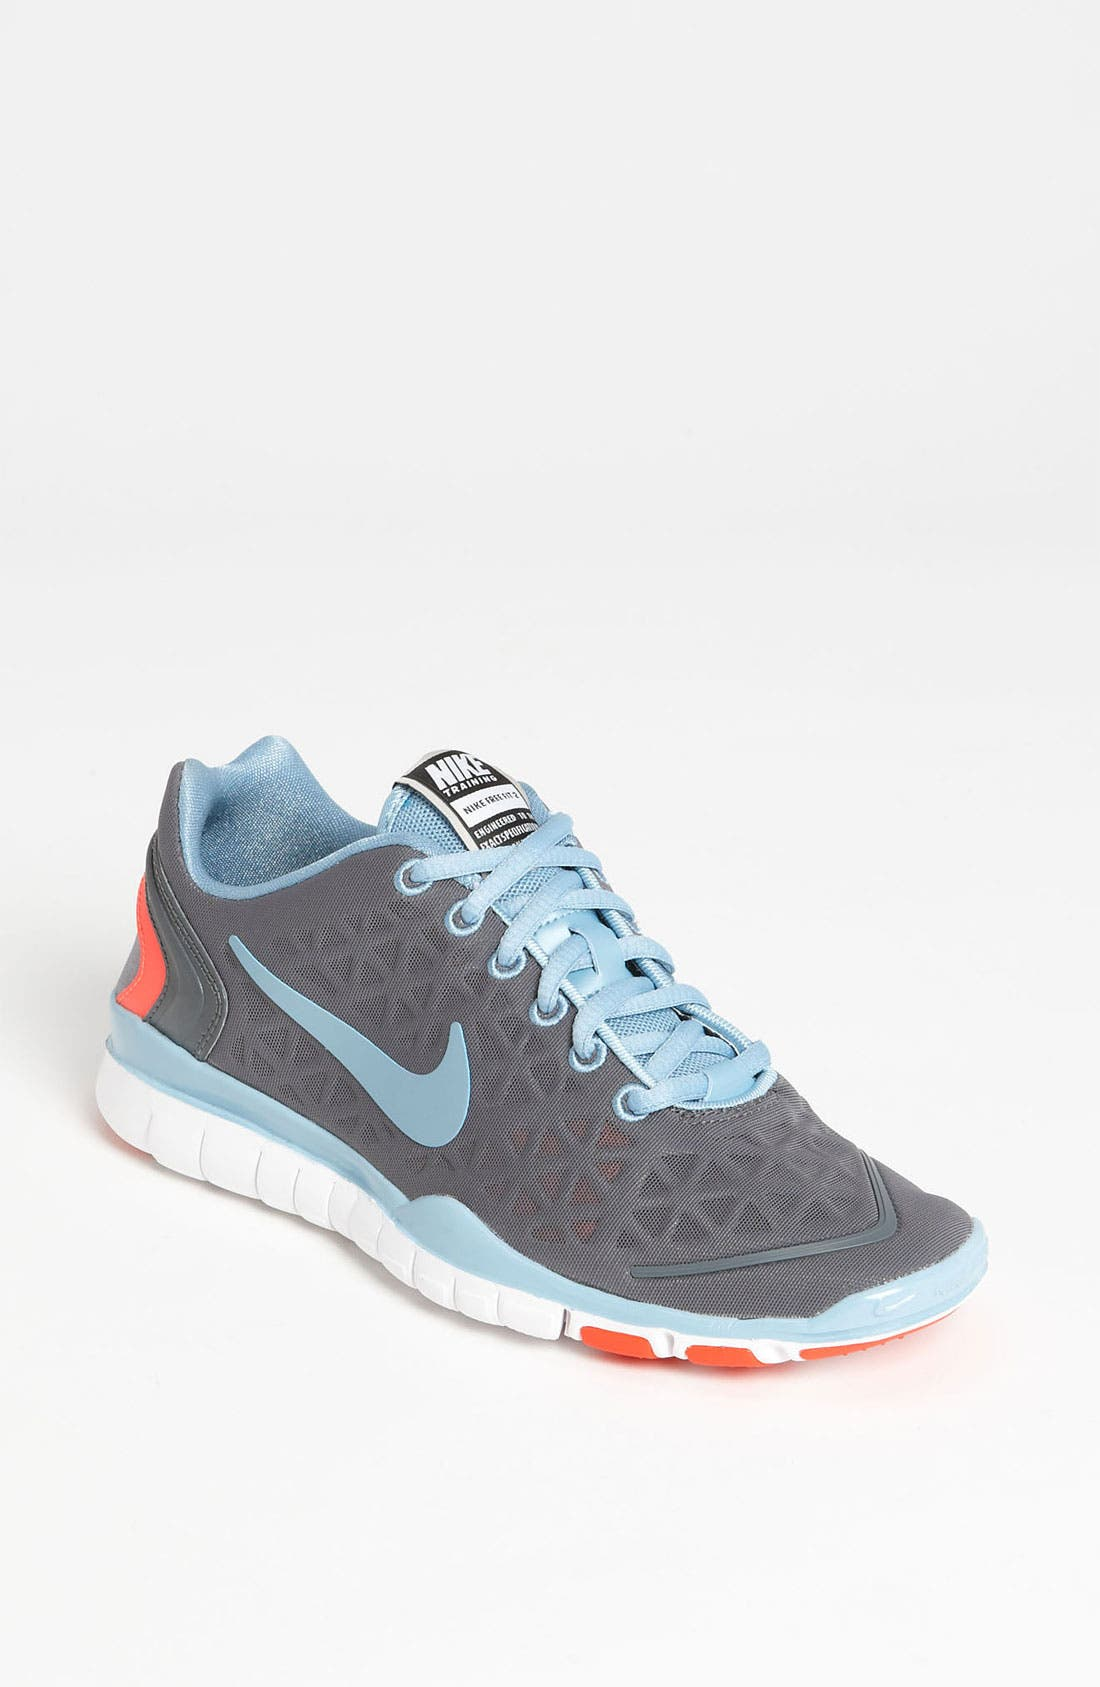 Main Image - Nike 'Free TR Fit 2' Training Shoe (Women)